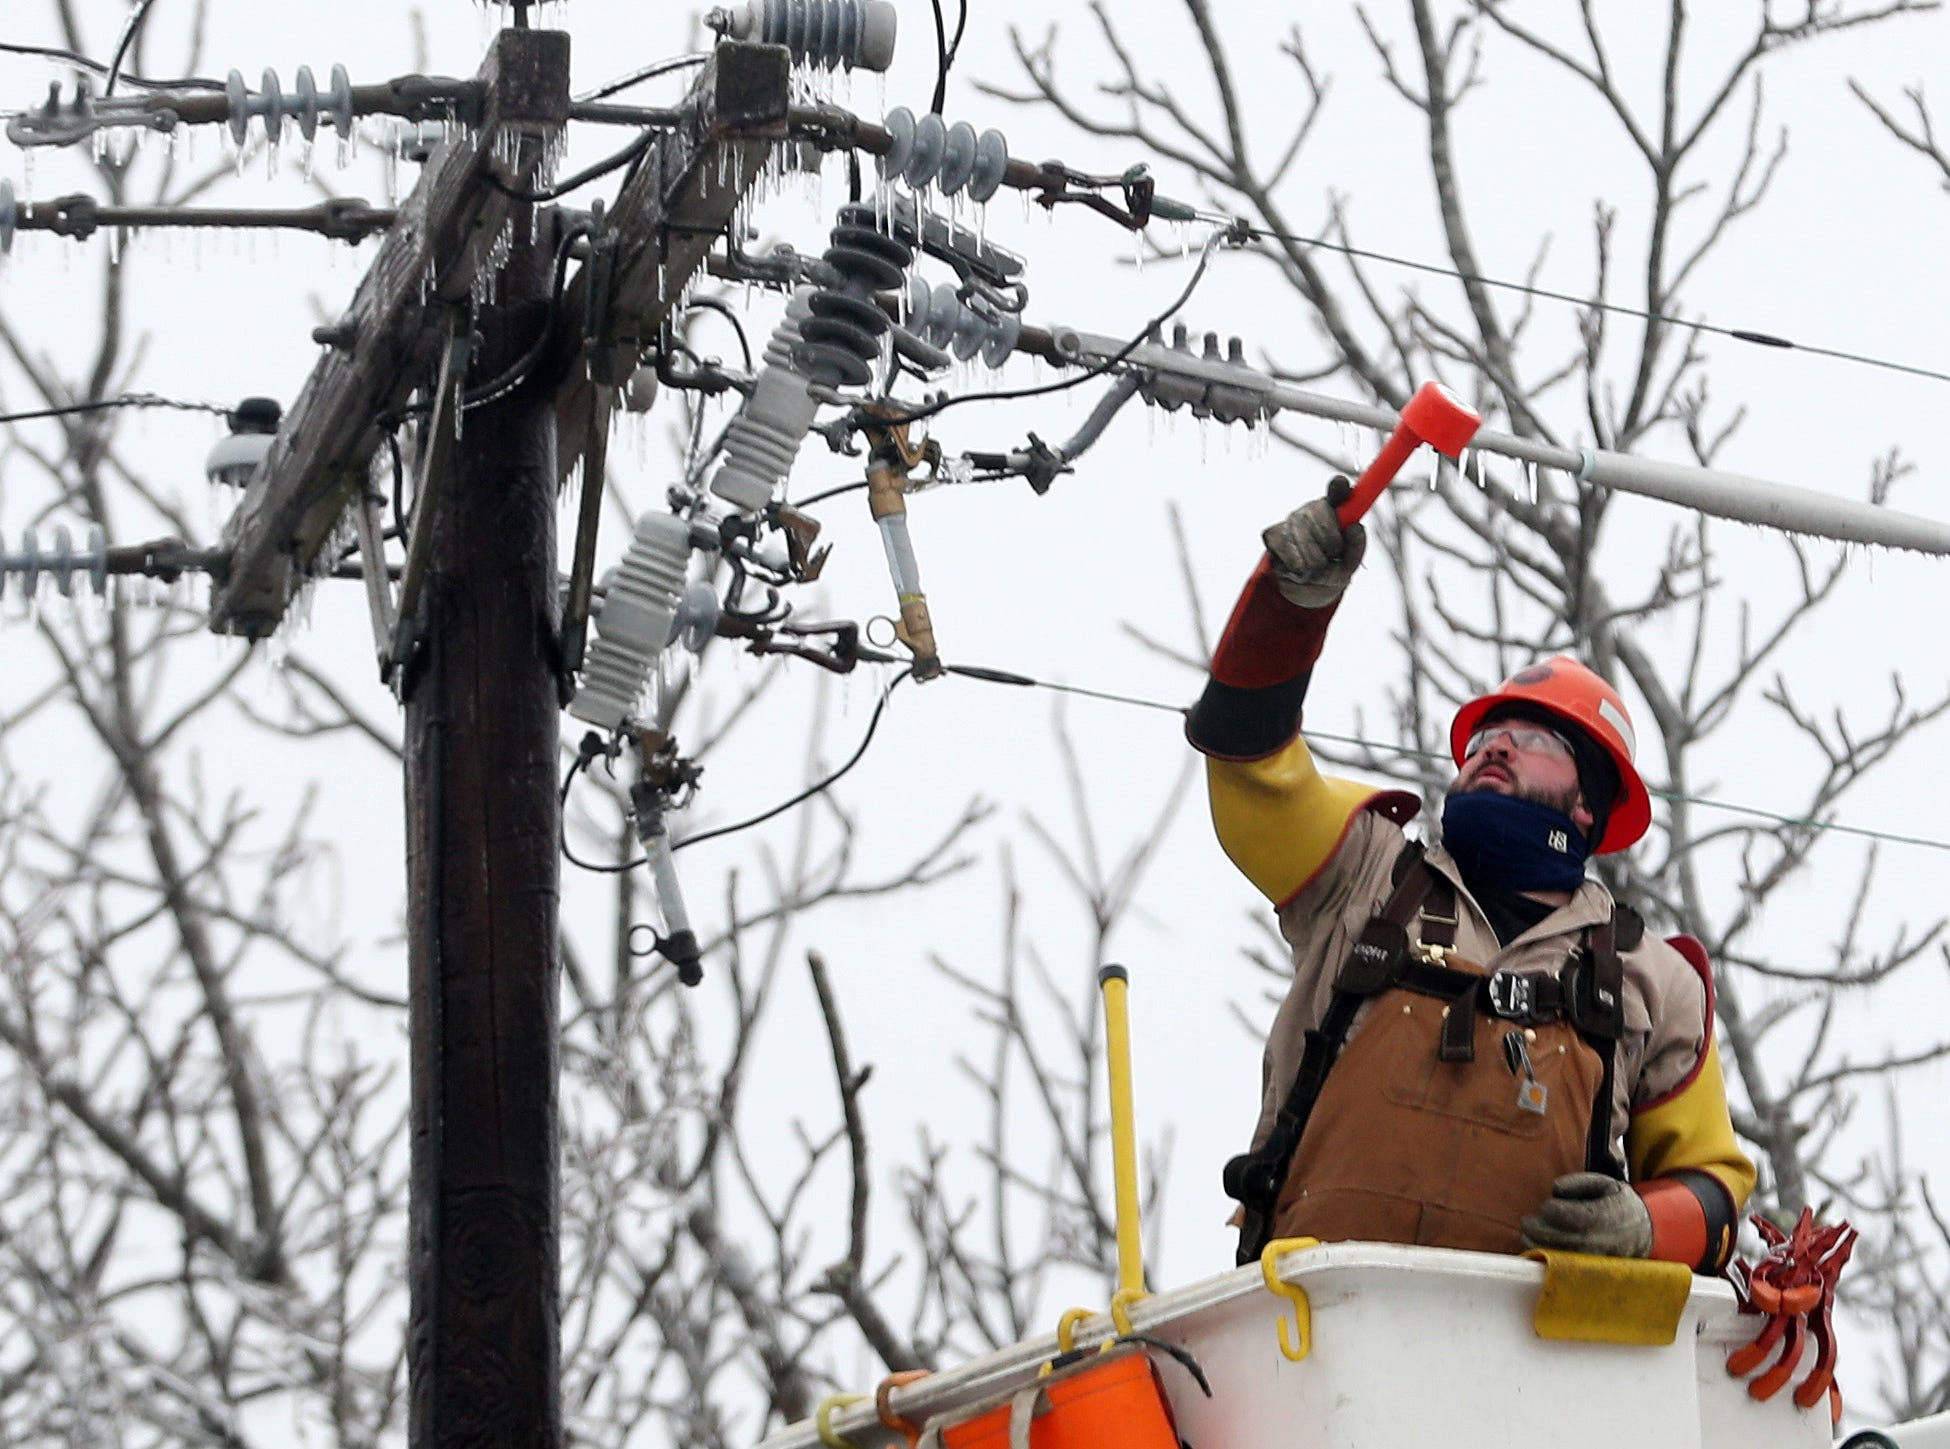 A lineman with Northline Utilities works on  power lines at  Route 121 and Dingle Ridge Road in North Salem Jan. 20, 2019. Northline Utilities is based in Au Sable Forks, N.Y., and had crews working in the area to assist NYSEG.